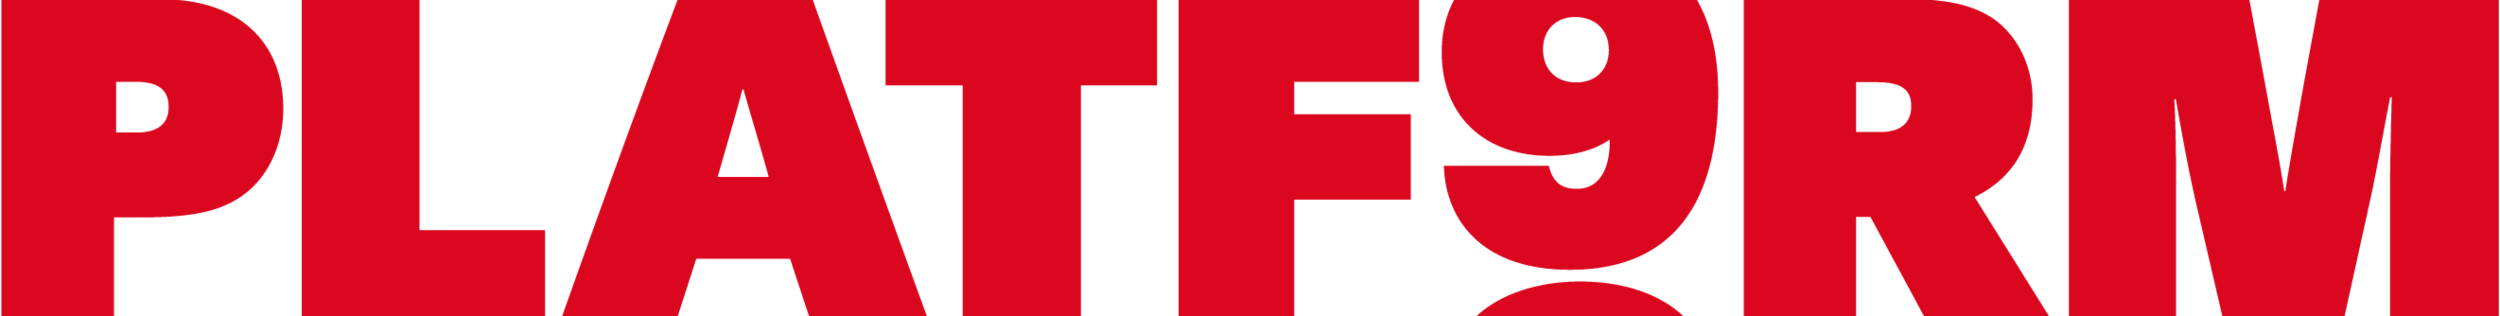 New logo red.png